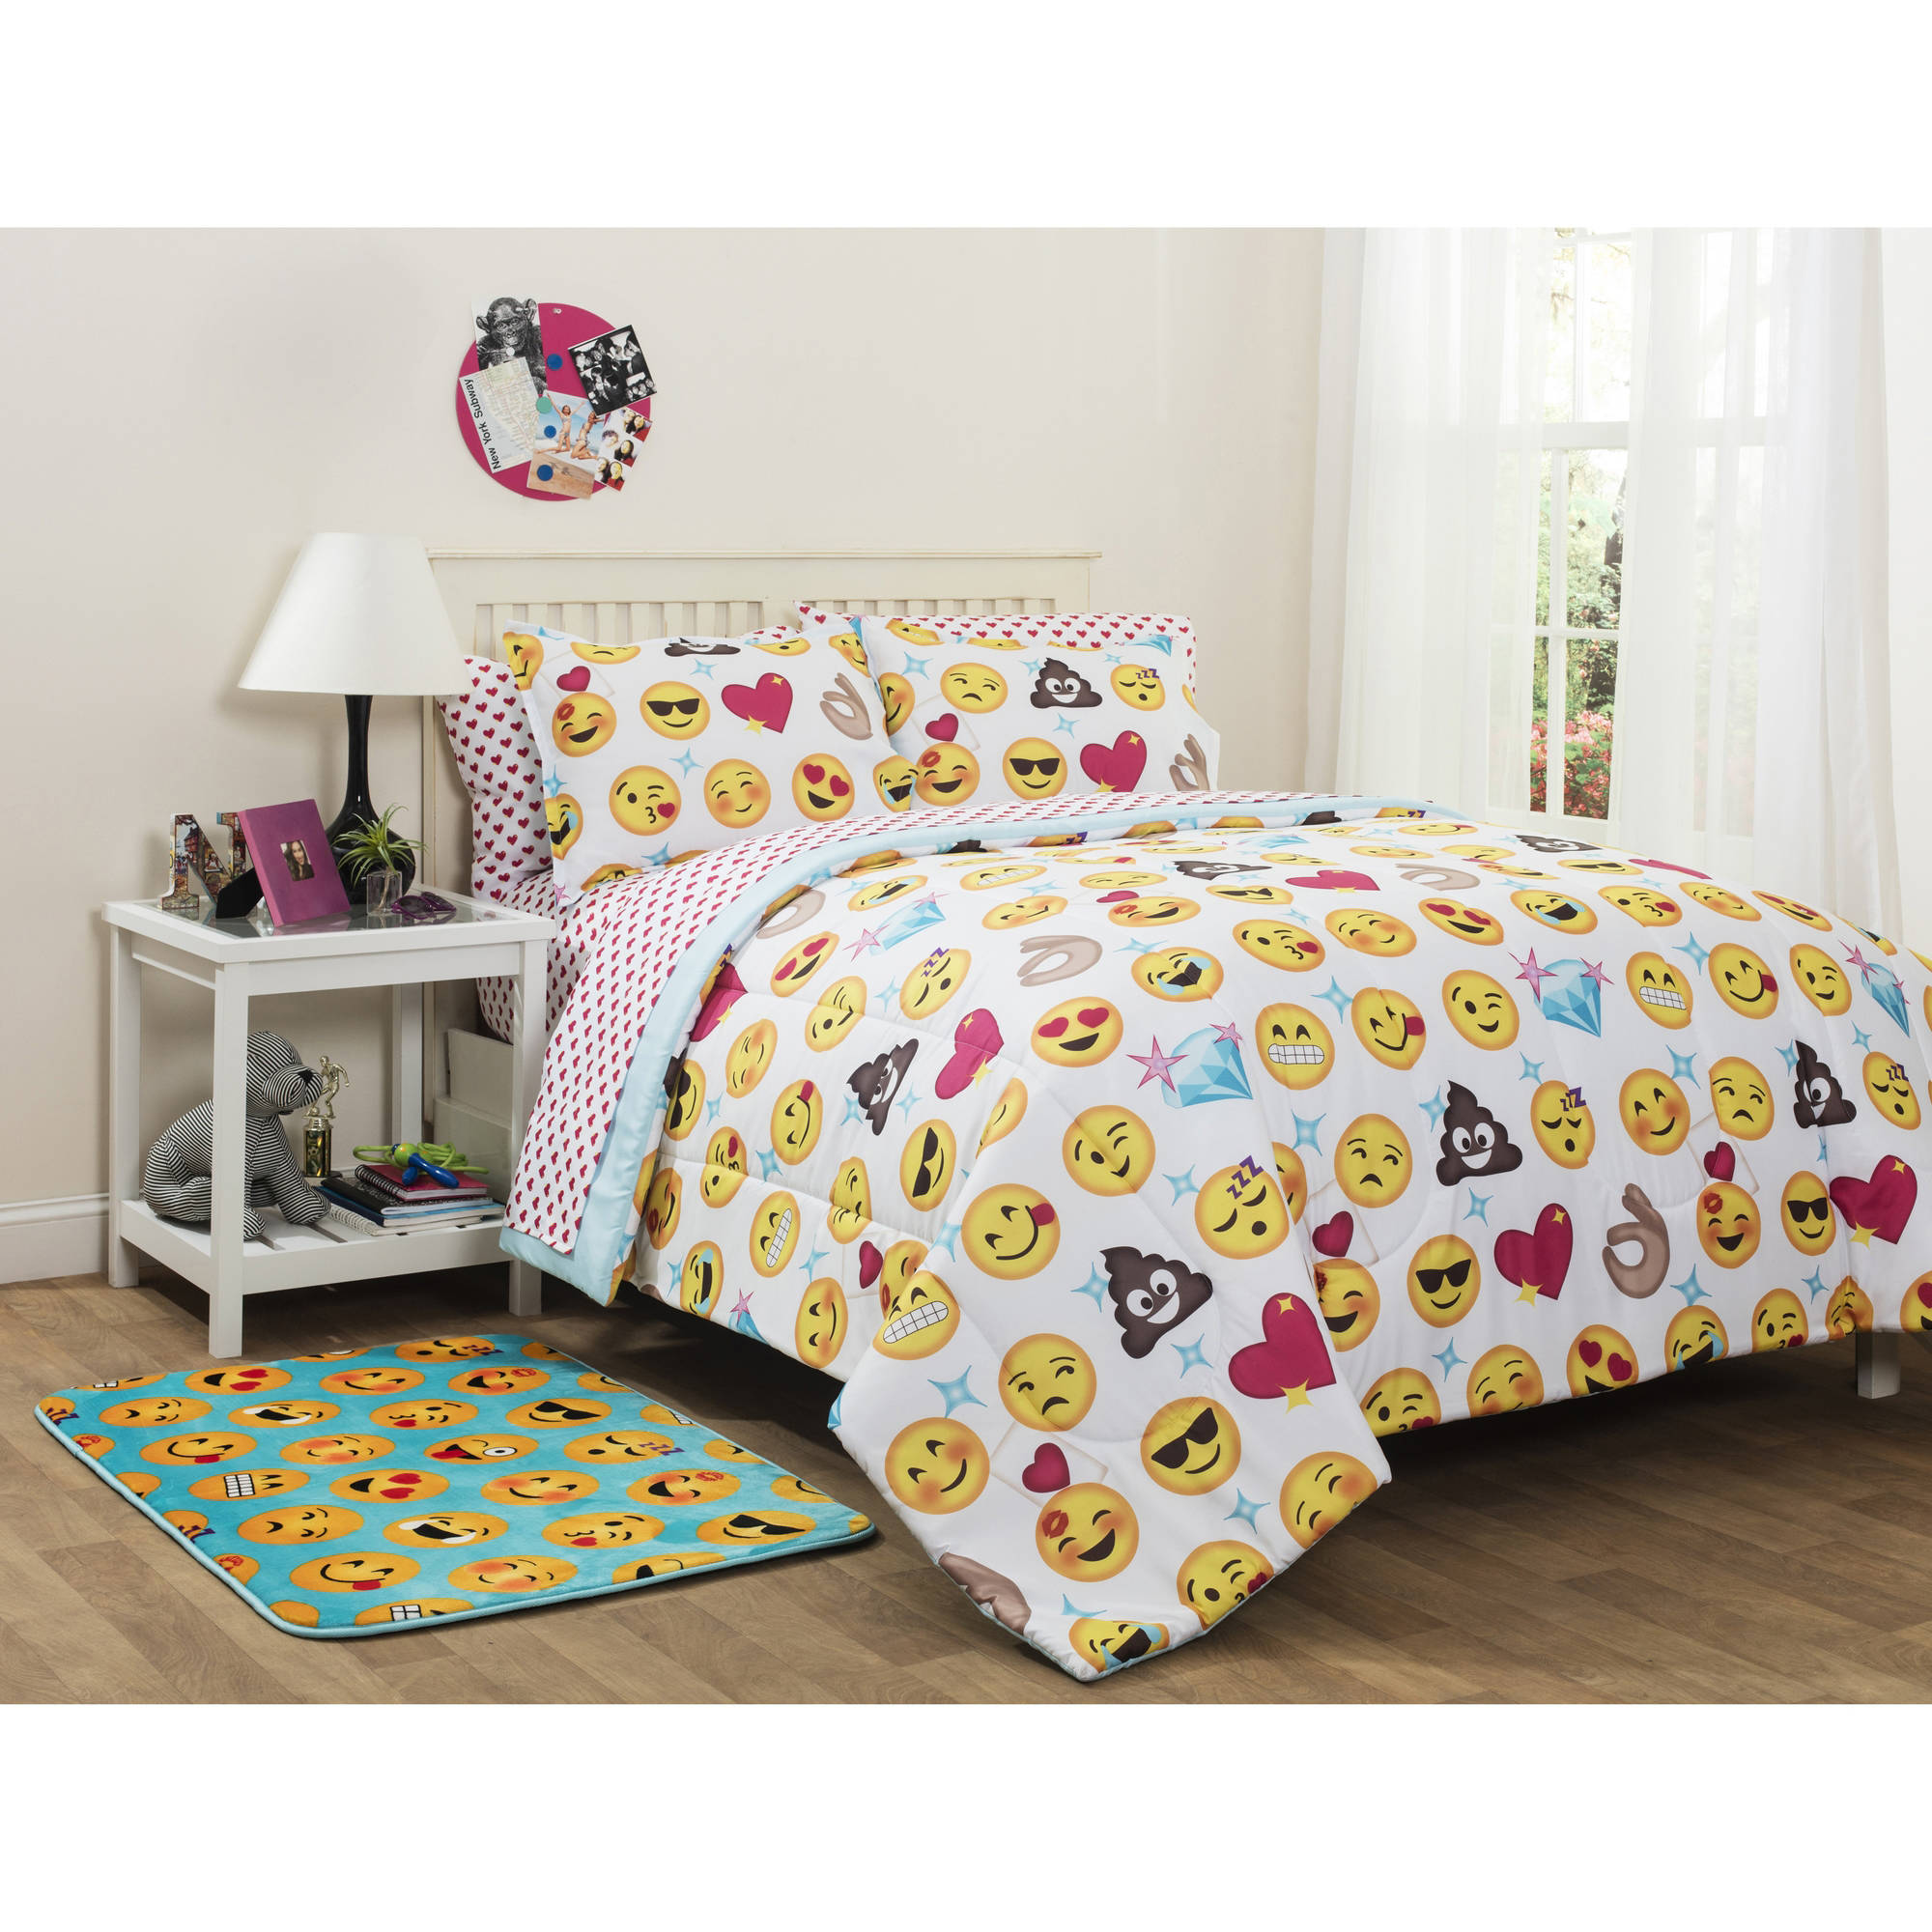 Emoji Pals Bed in a Bag Bedding Set- Online Only